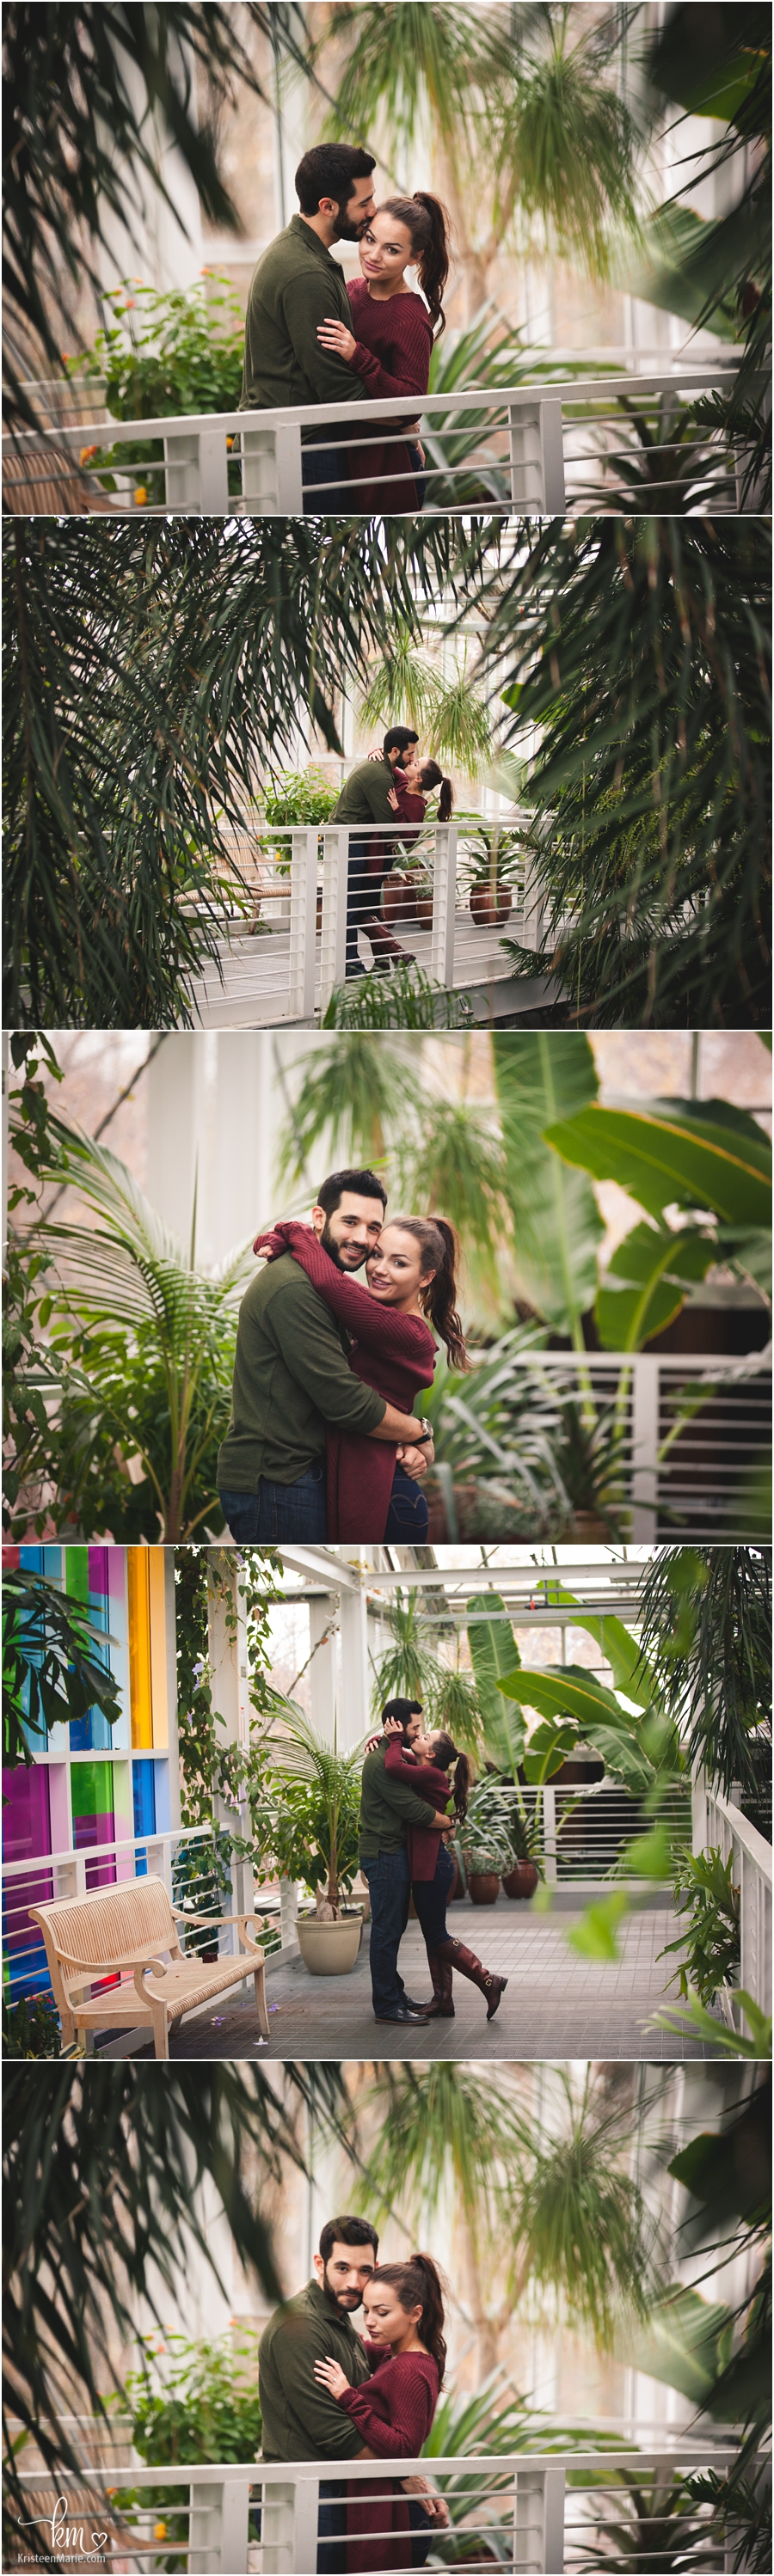 Indianapolis proposal photography at Zoo